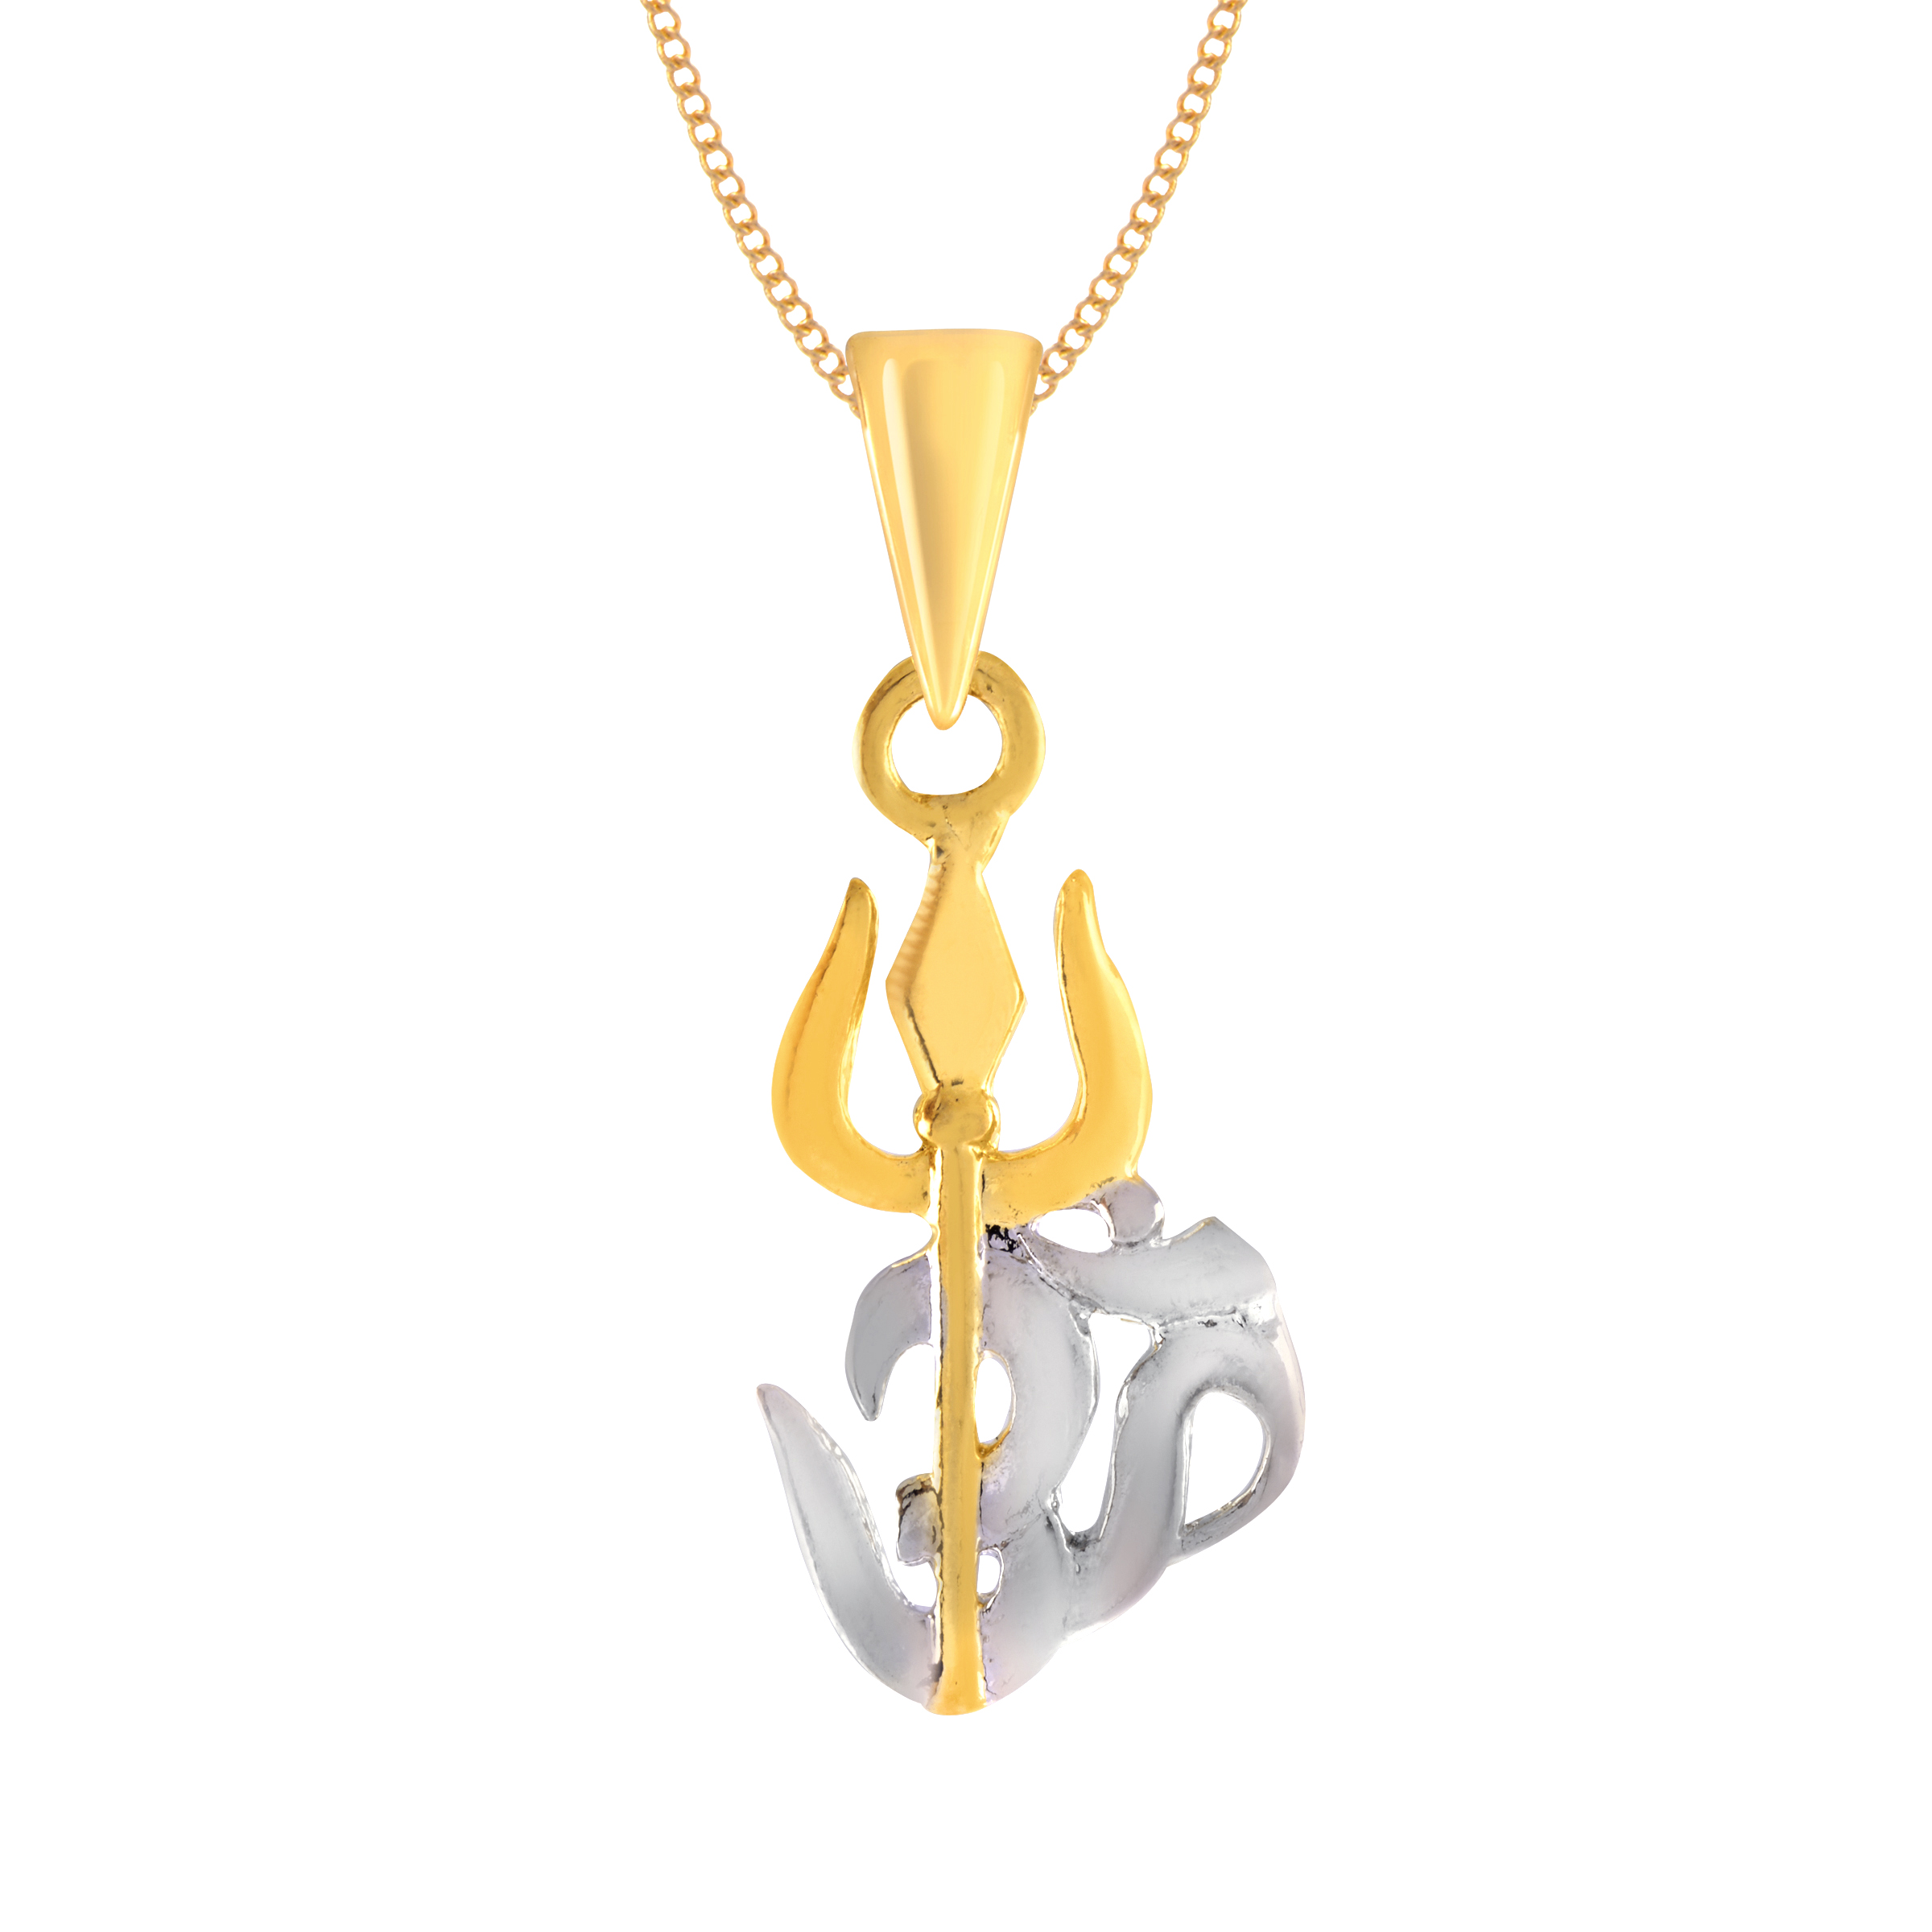 chain trishul buy original cz om with pendant online women men jewelscartin gold god plated designs fashion jewellery designers